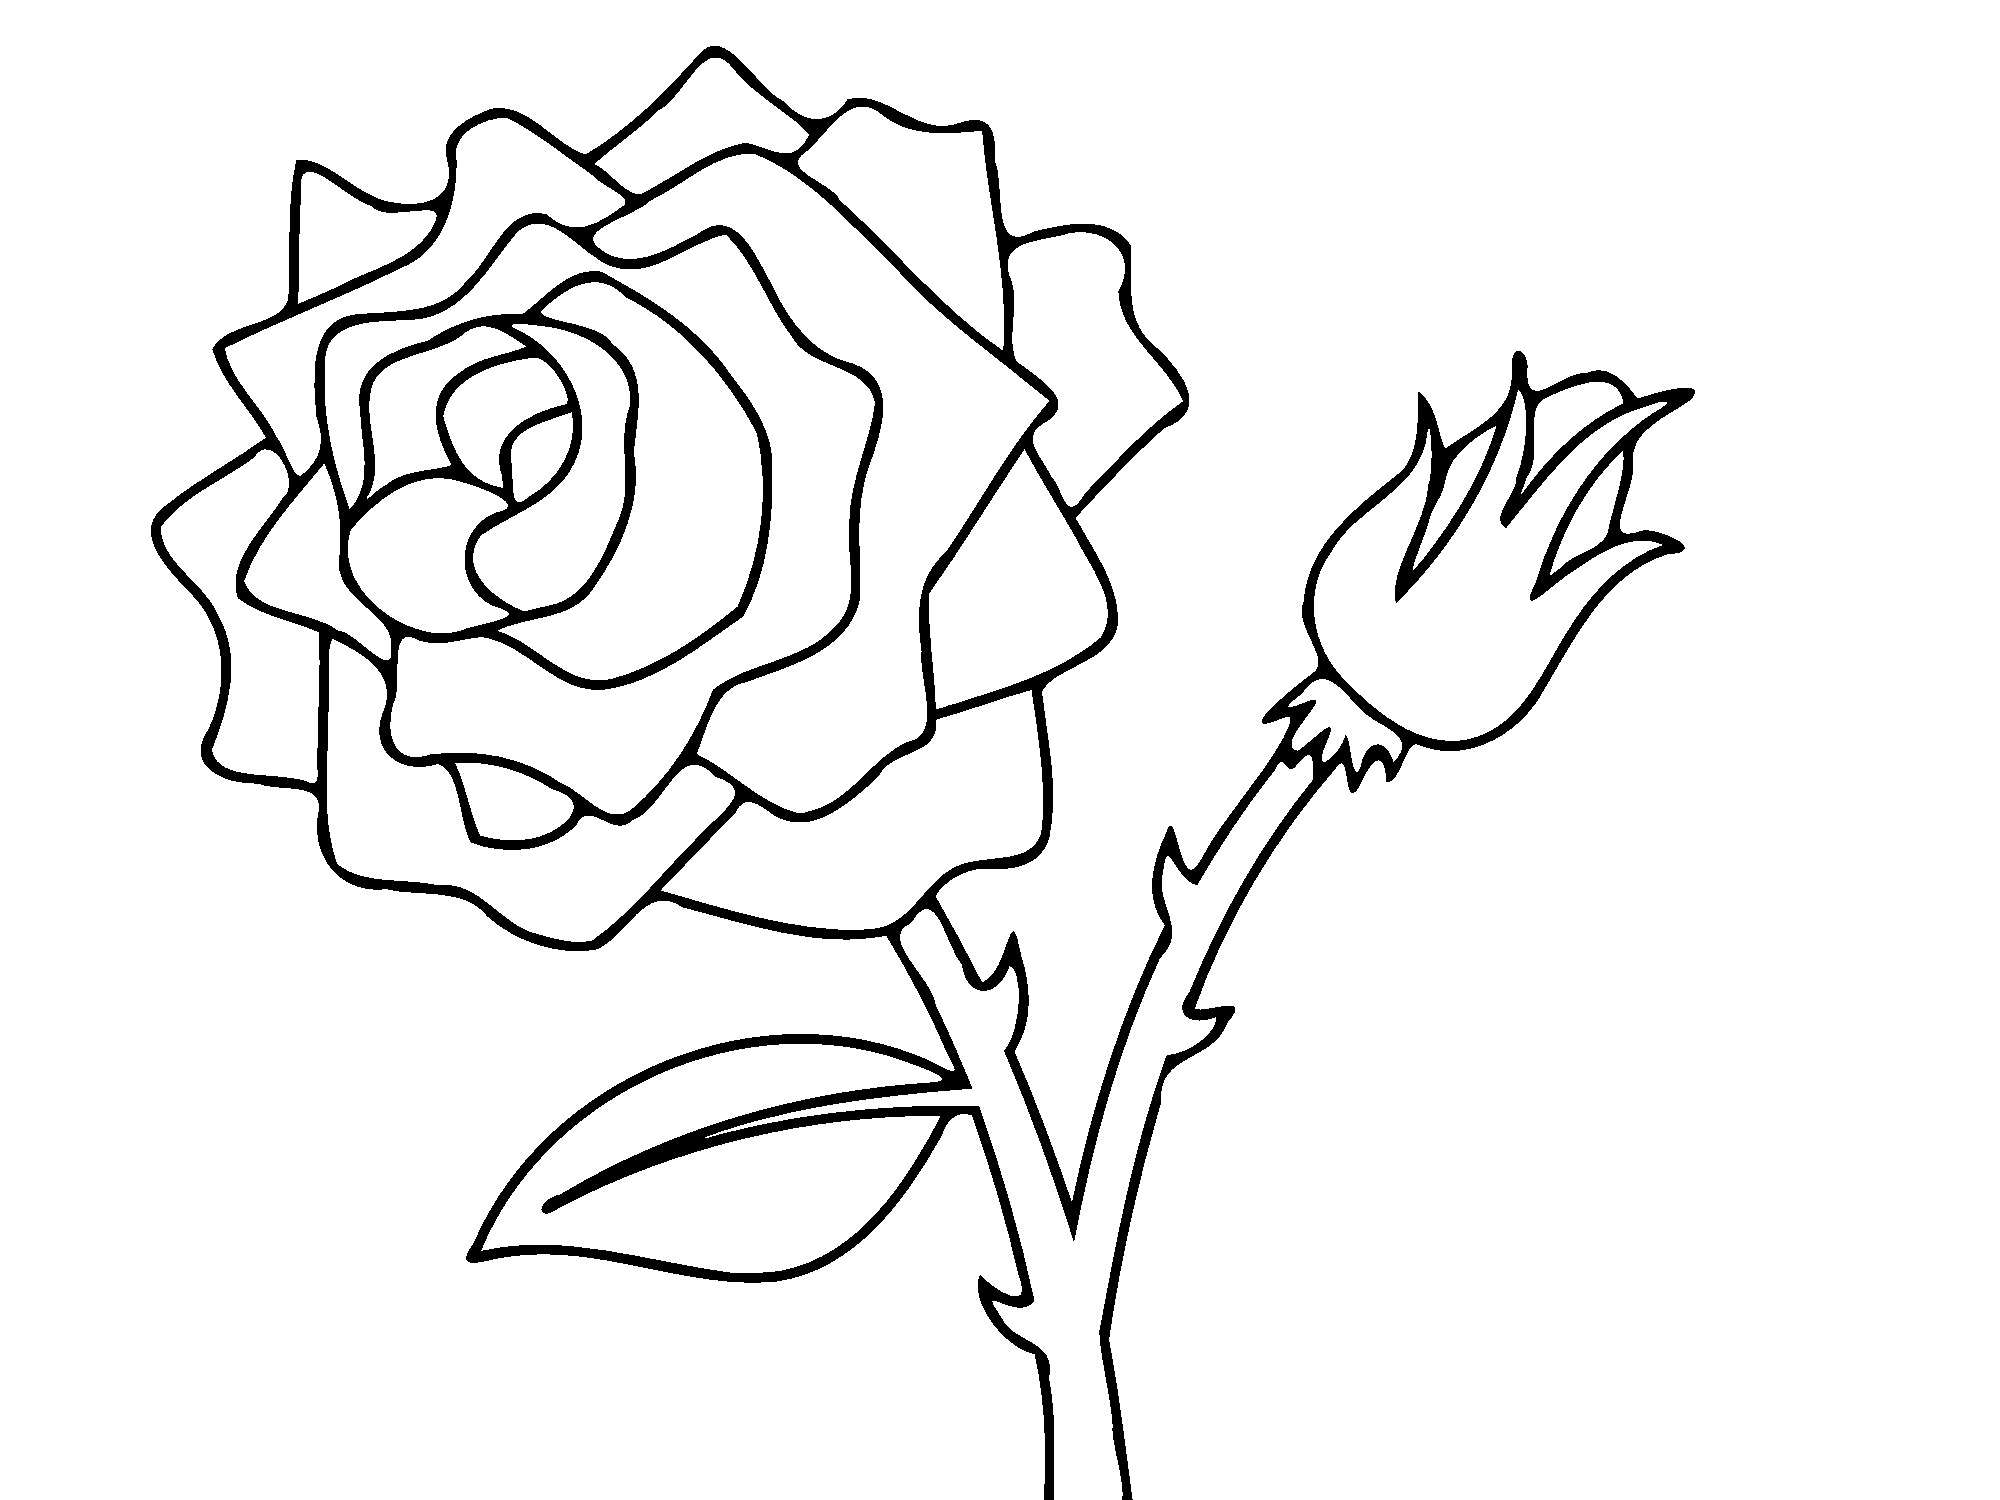 coloring pictures roses rose with three leaves coloring page download print roses coloring pictures